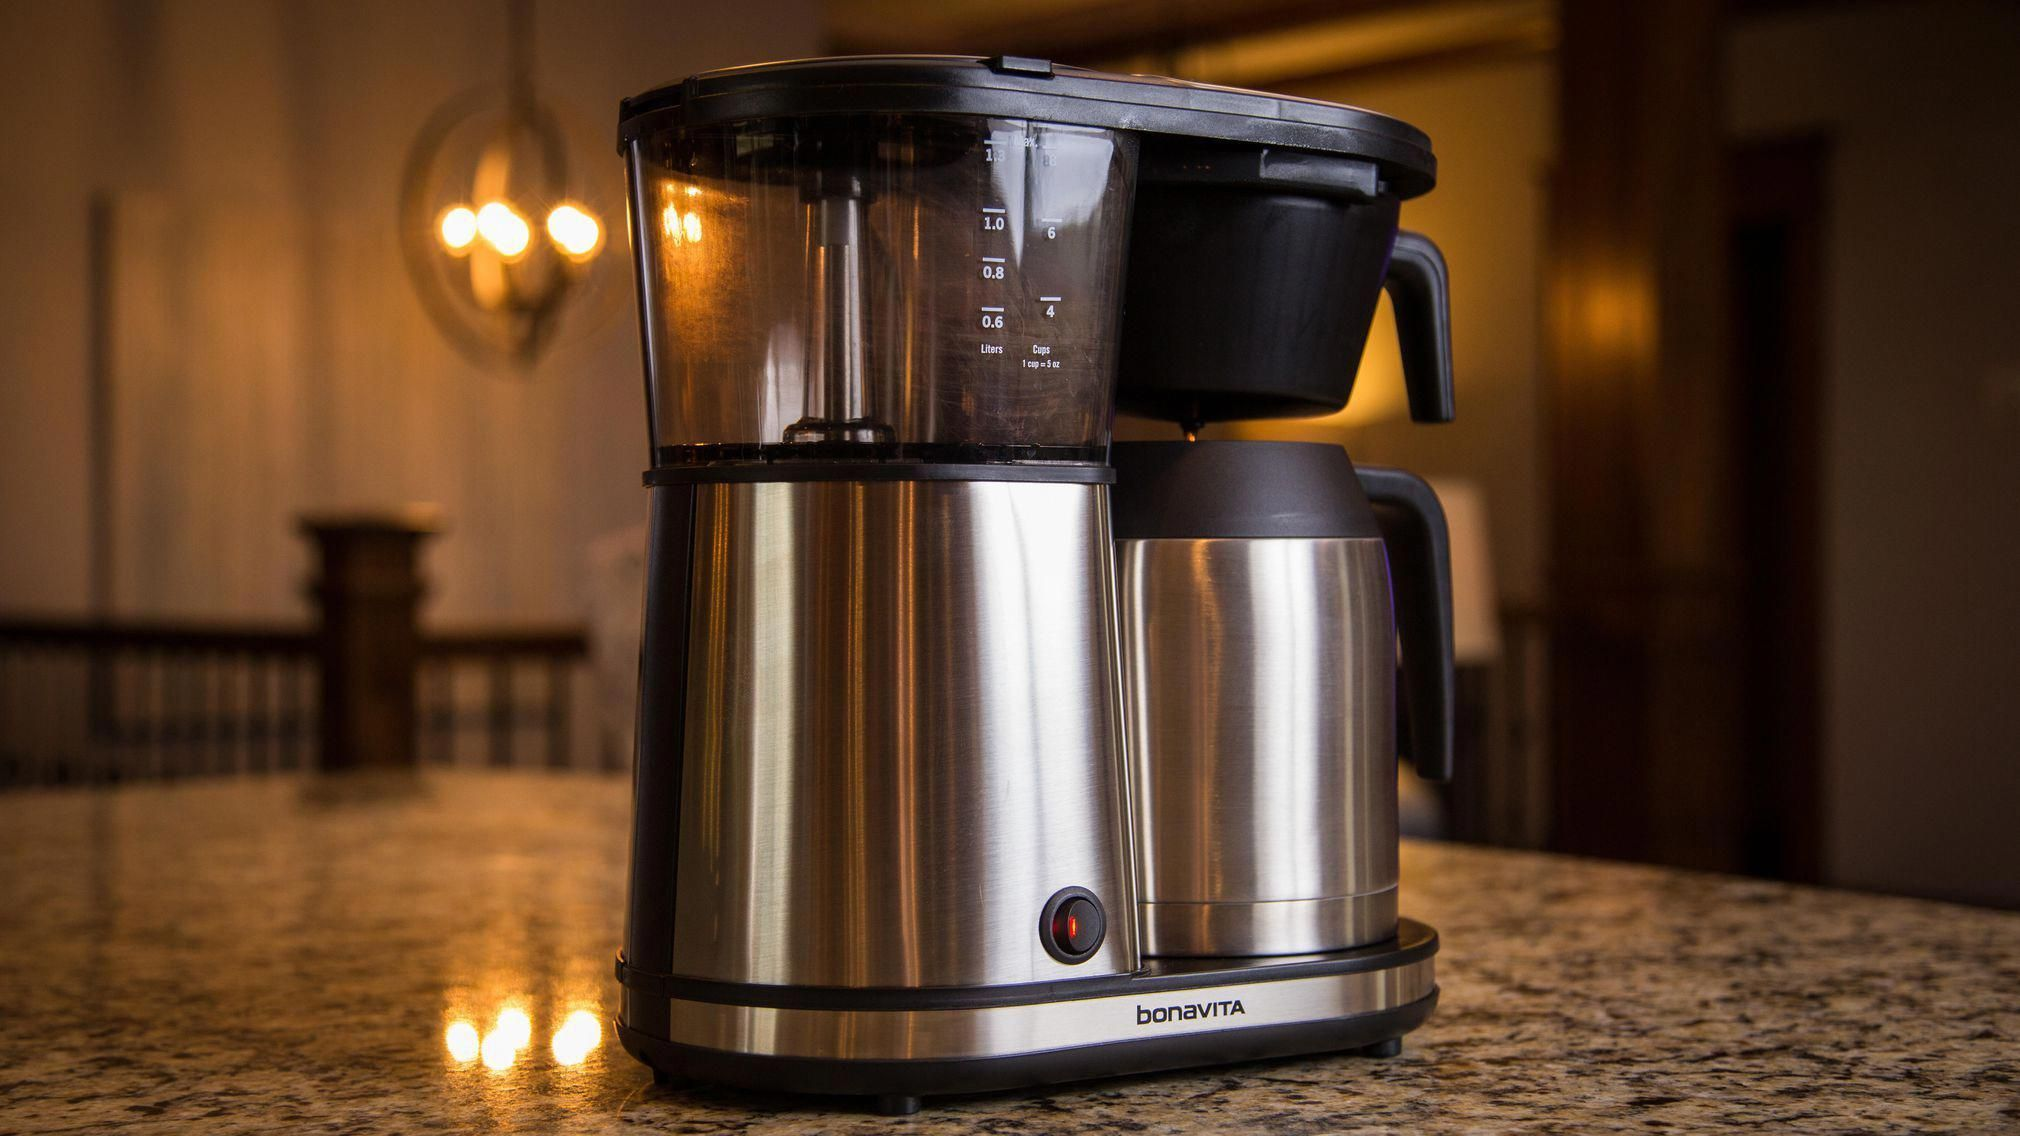 This new bonavita coffee maker is the one you should buy